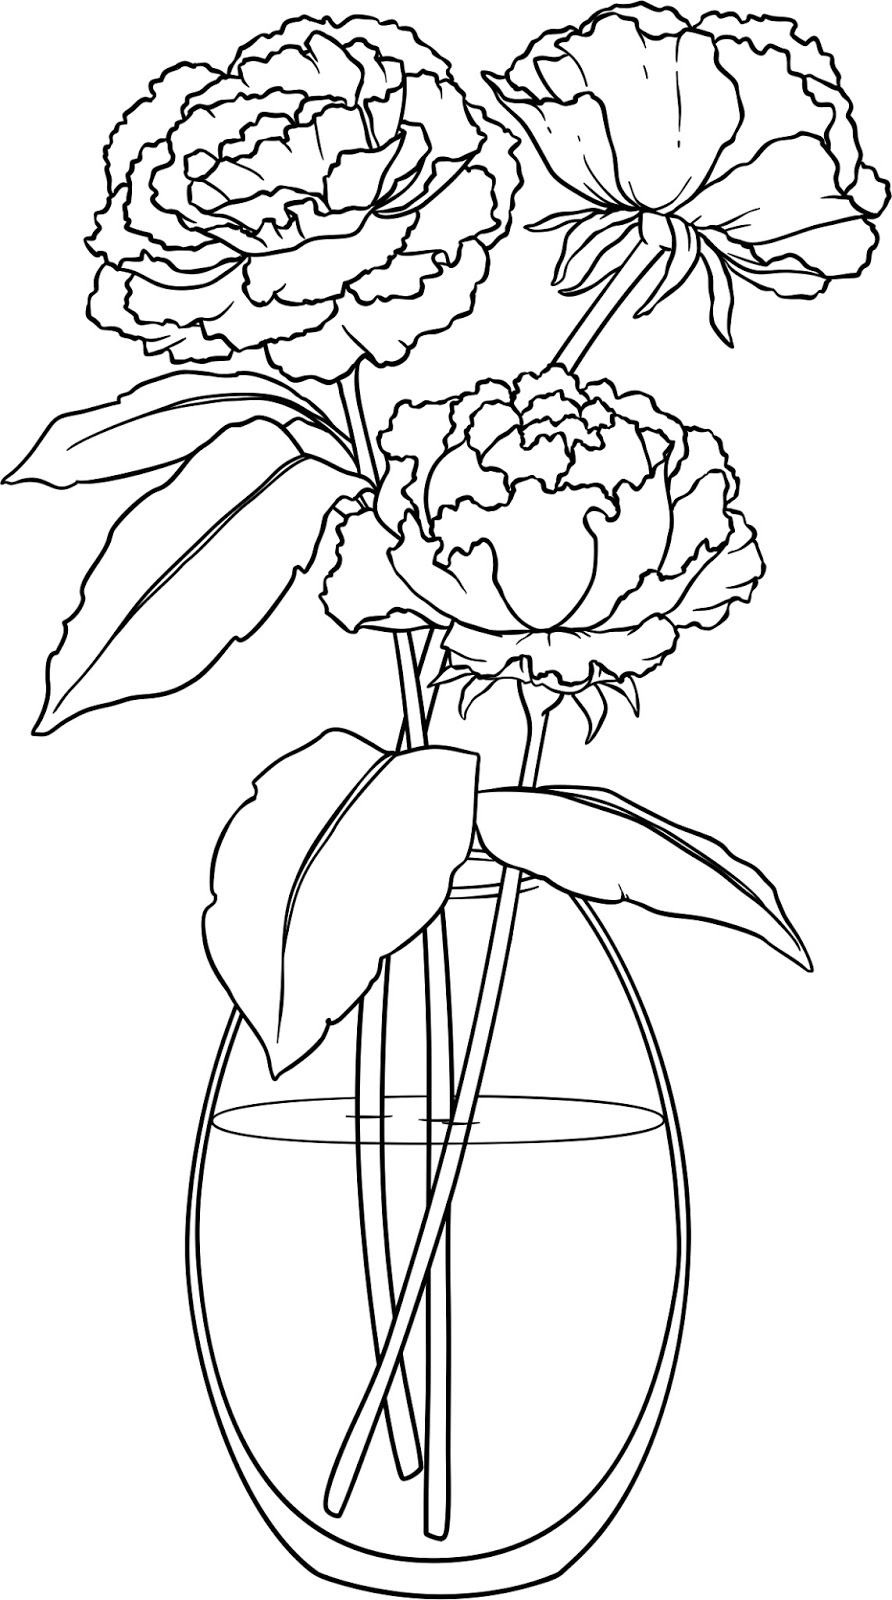 Drawn peony flower vase Just Peonies boy complicated! Place: